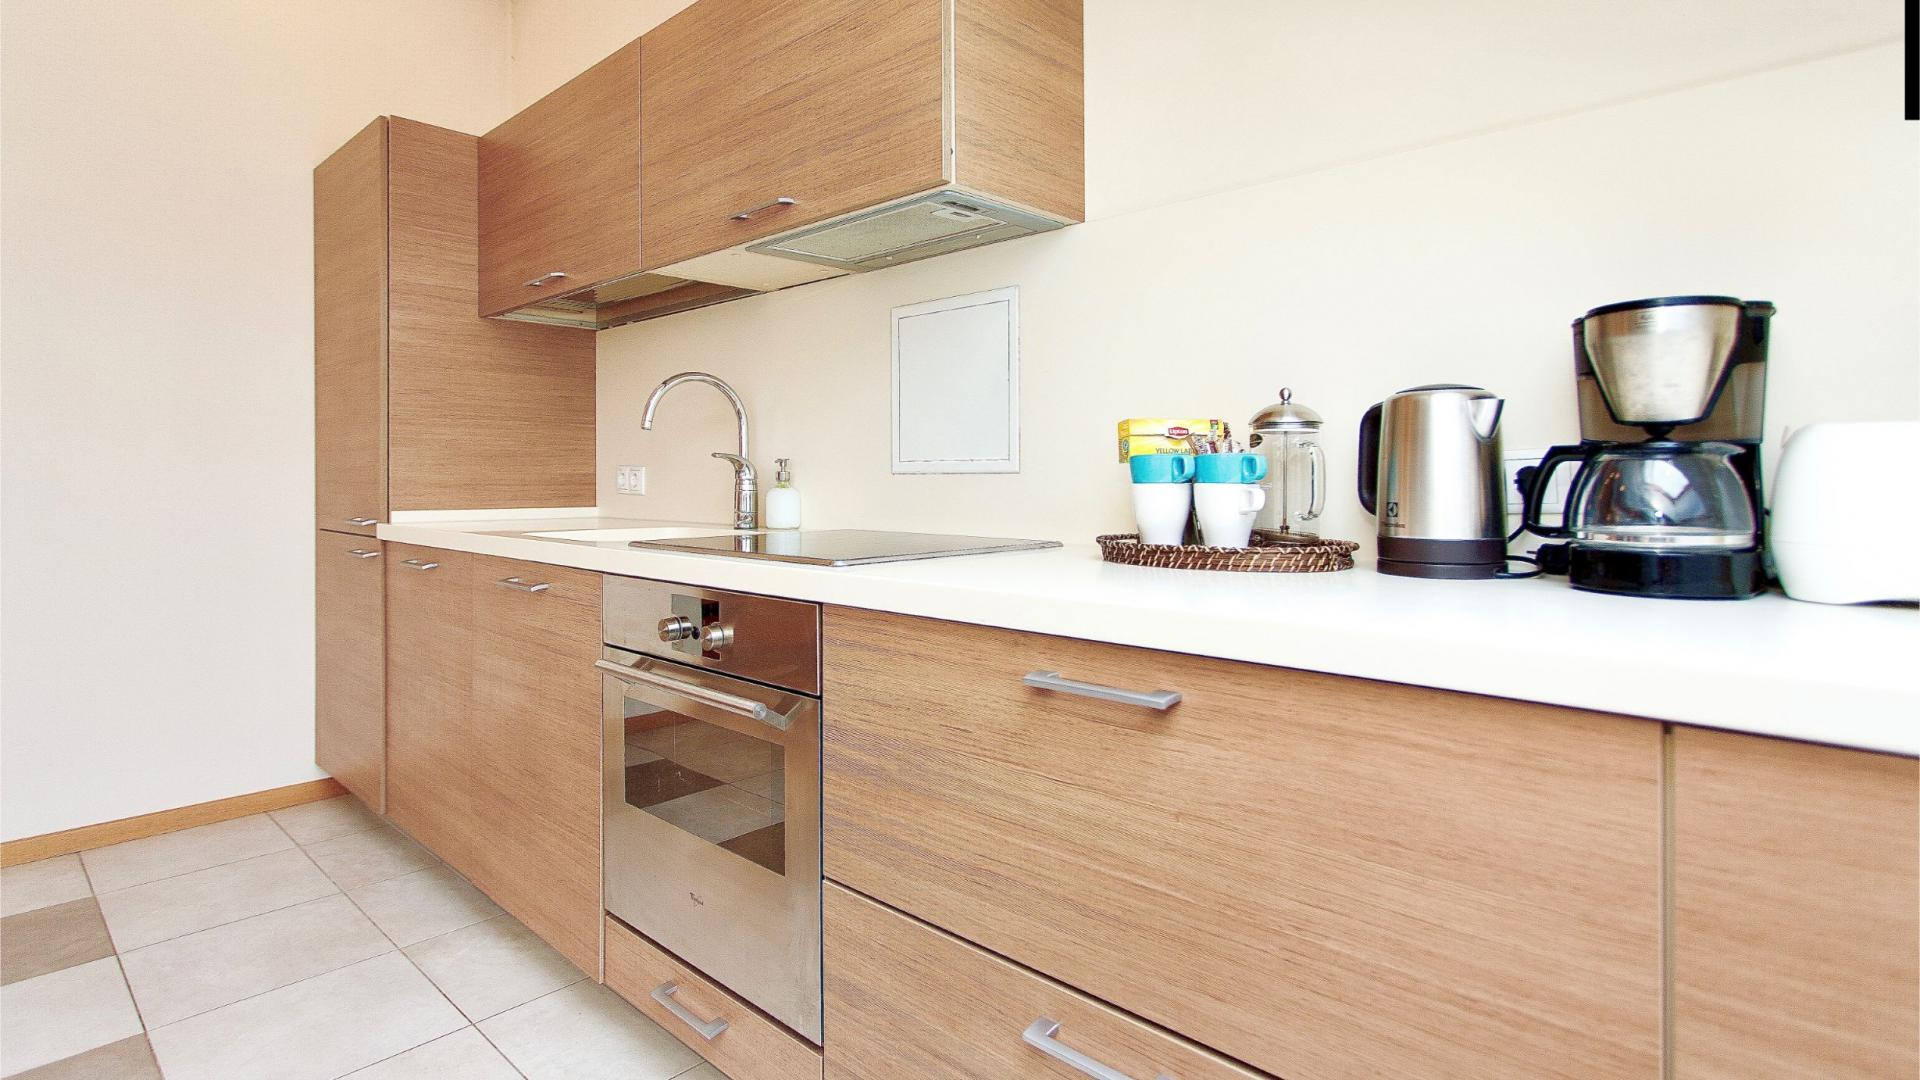 Kitchen at Stikliu Town Hall Apartment